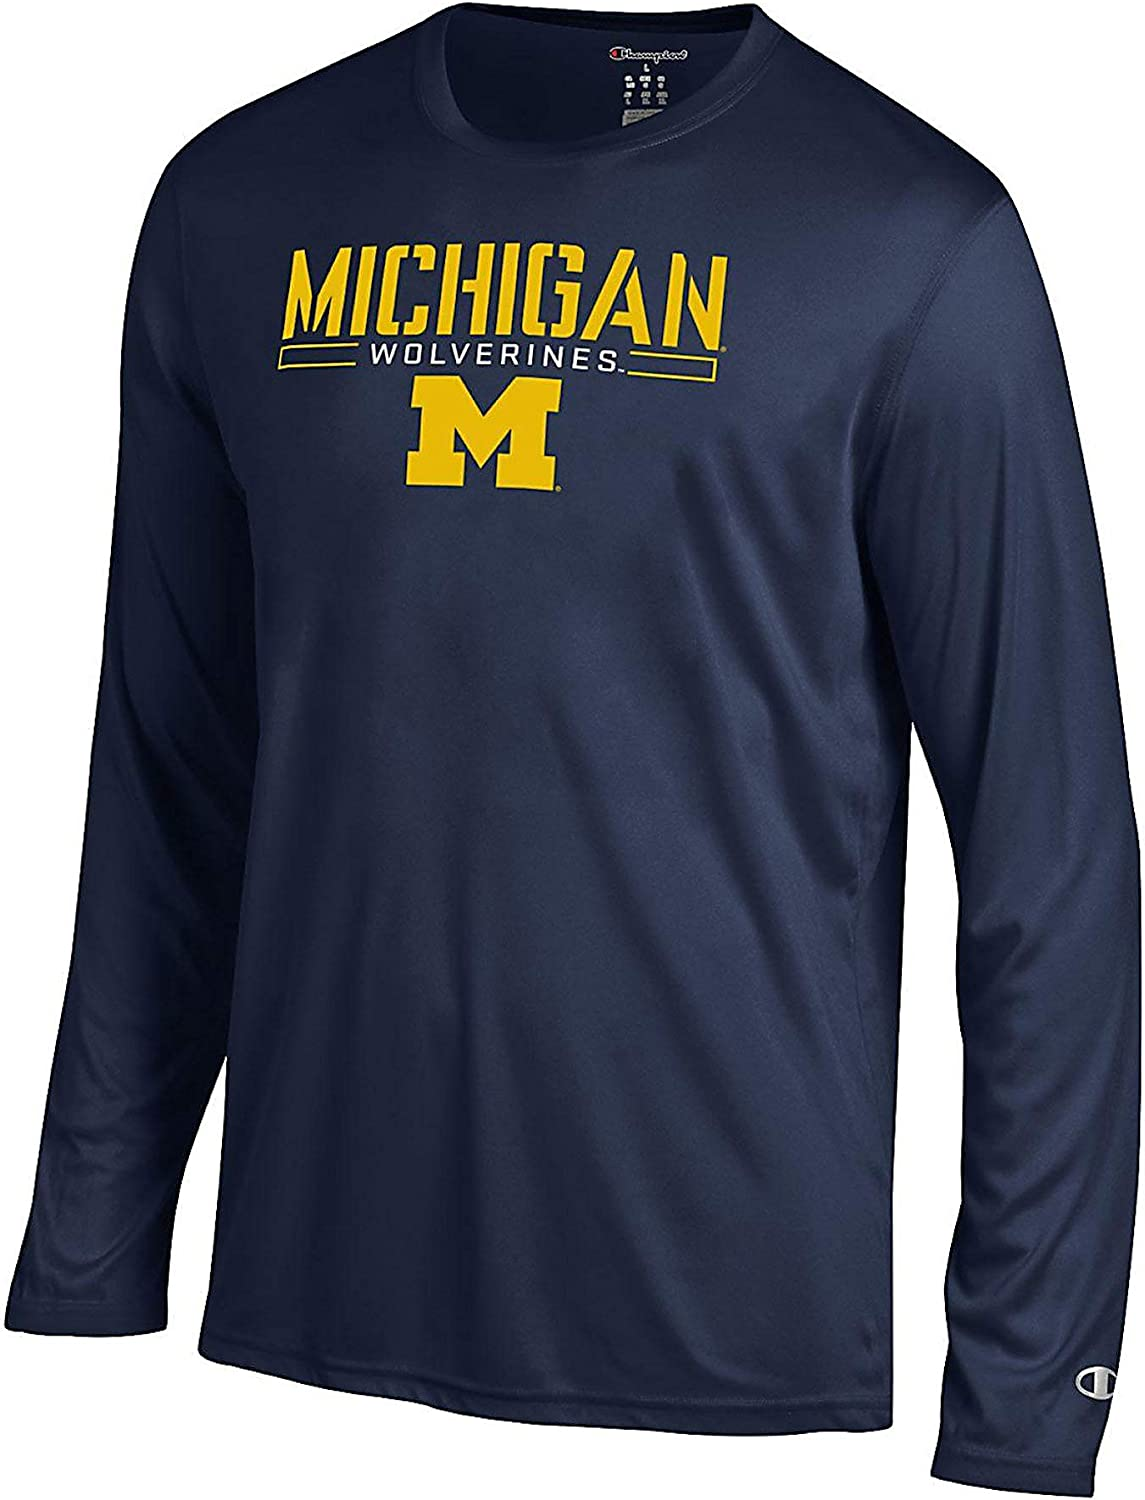 Luxury Gear for Sports College Men's Synthetic Athletic S T High quality Long Sleeve